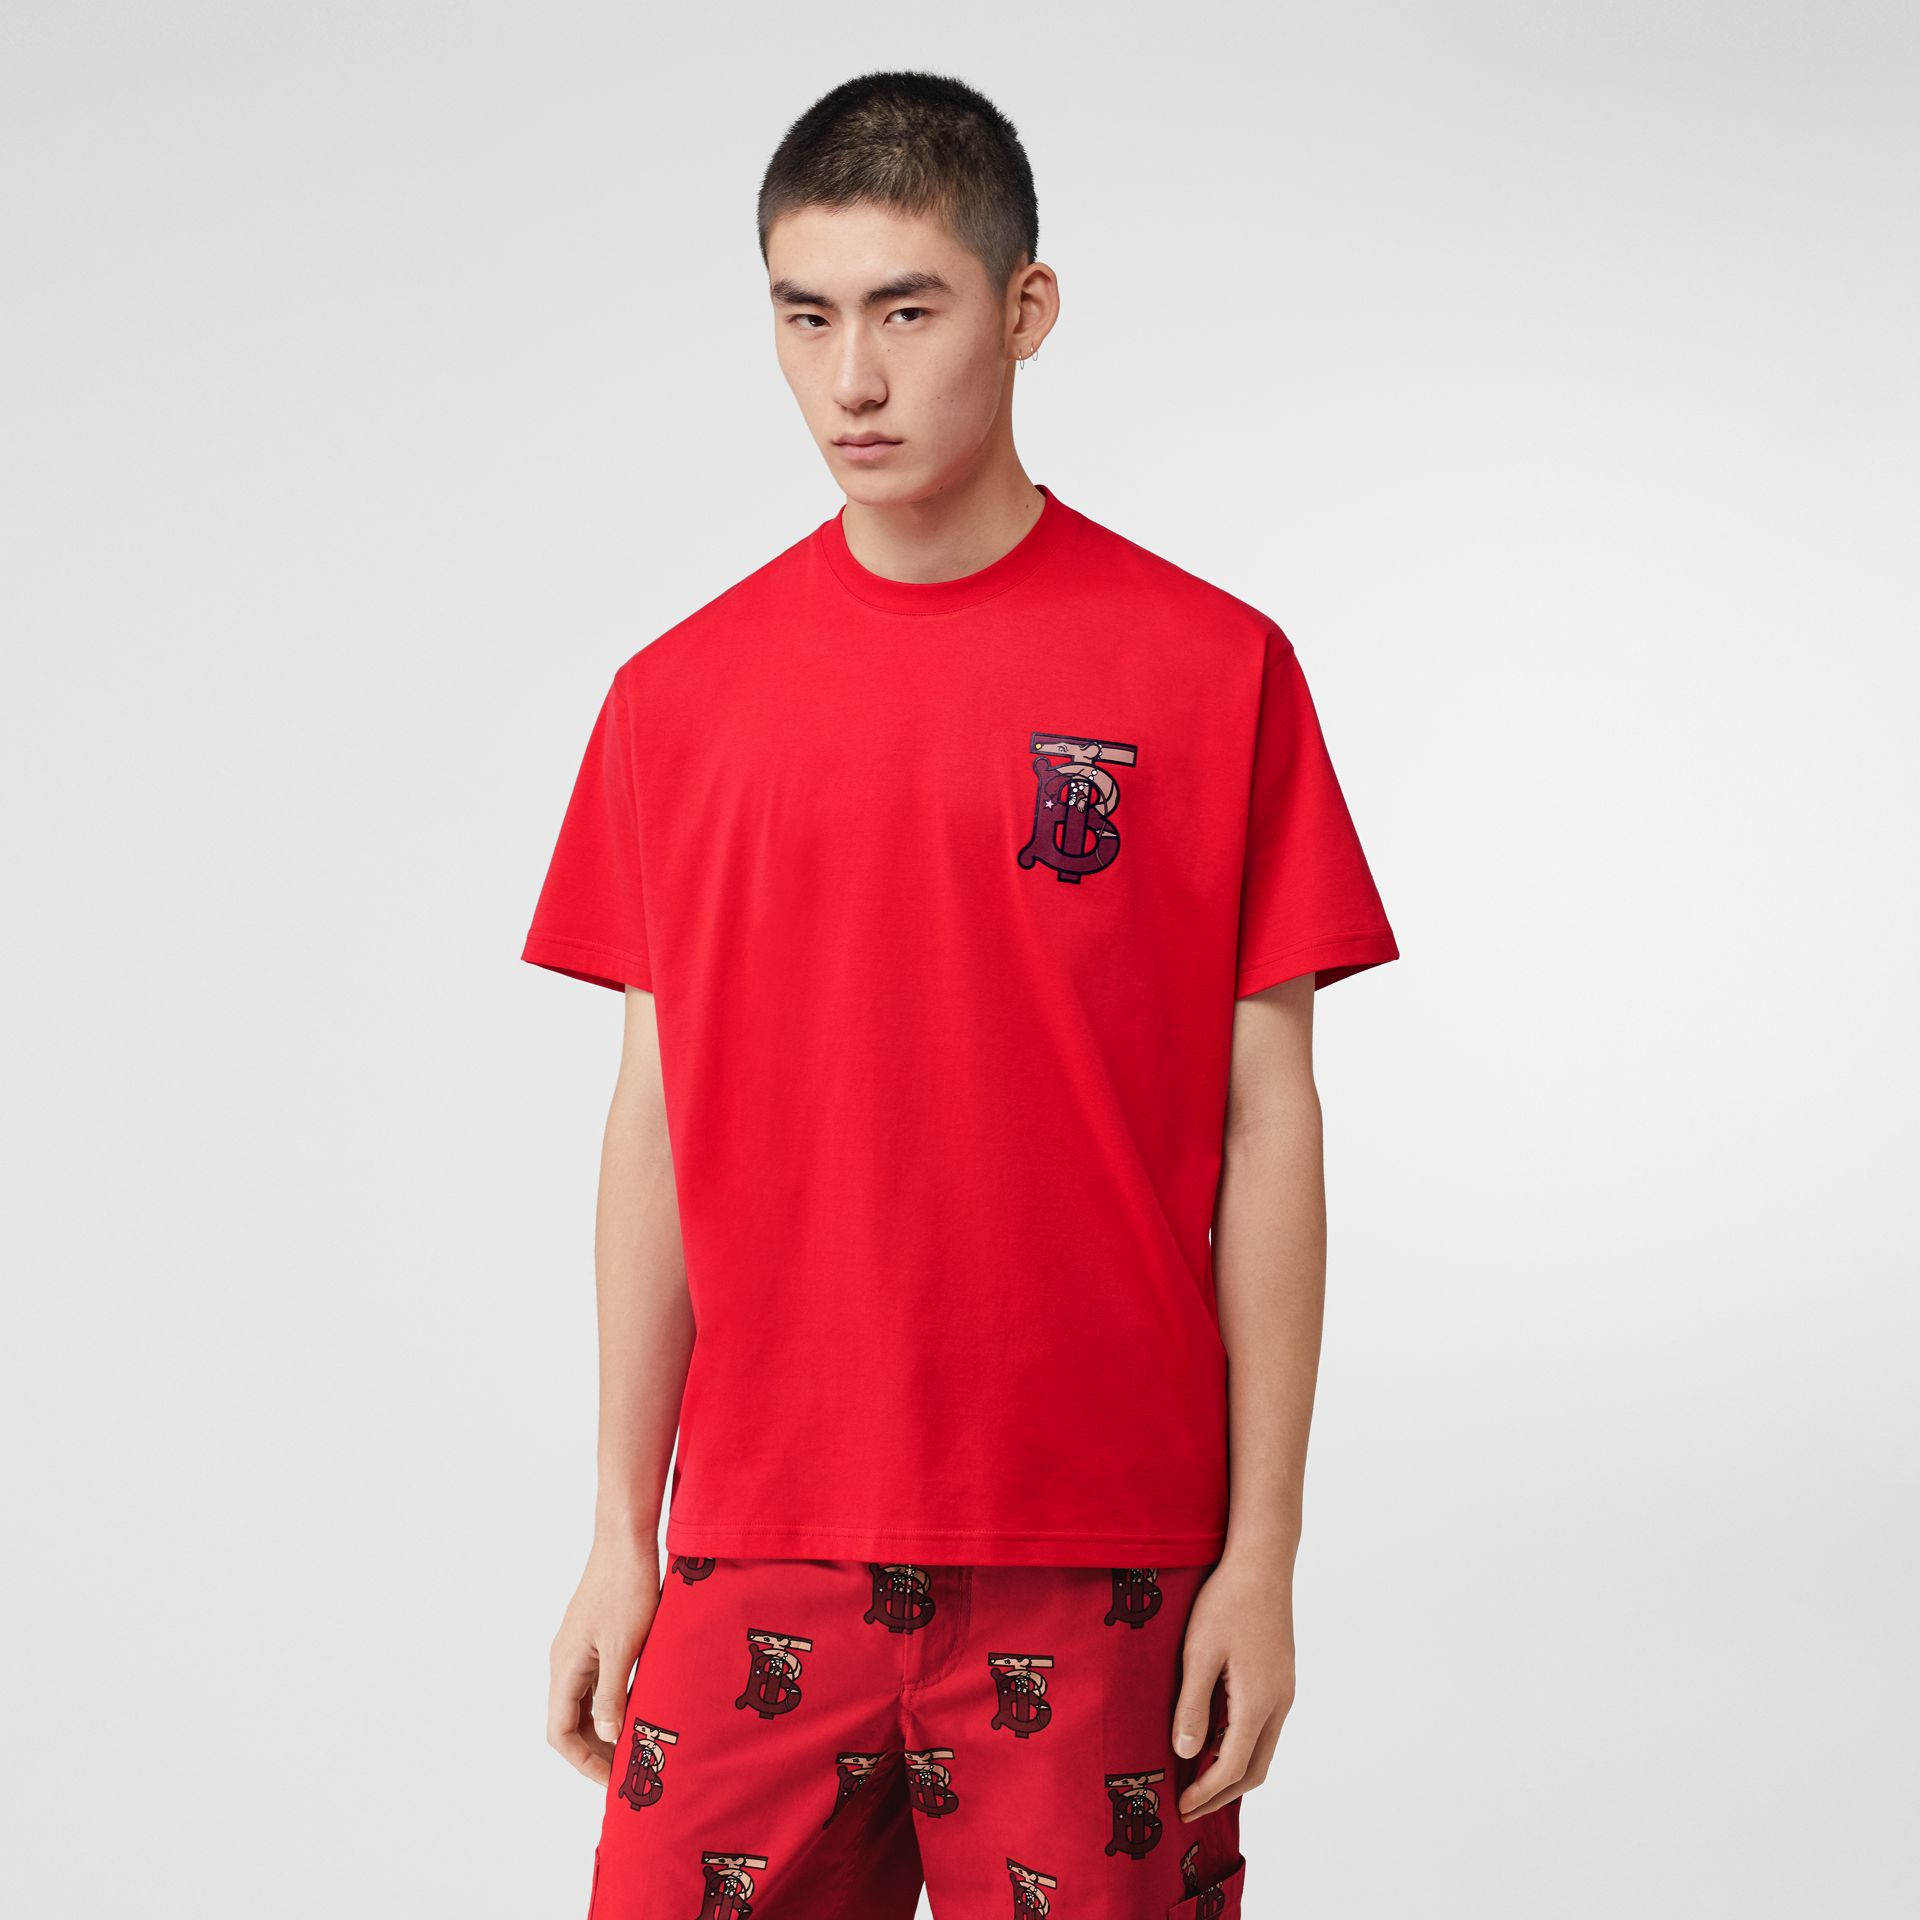 Monogram Motif Cotton Oversized T-shirt in Racing Red - Men | Burberry United Kingdom - gallery image 4